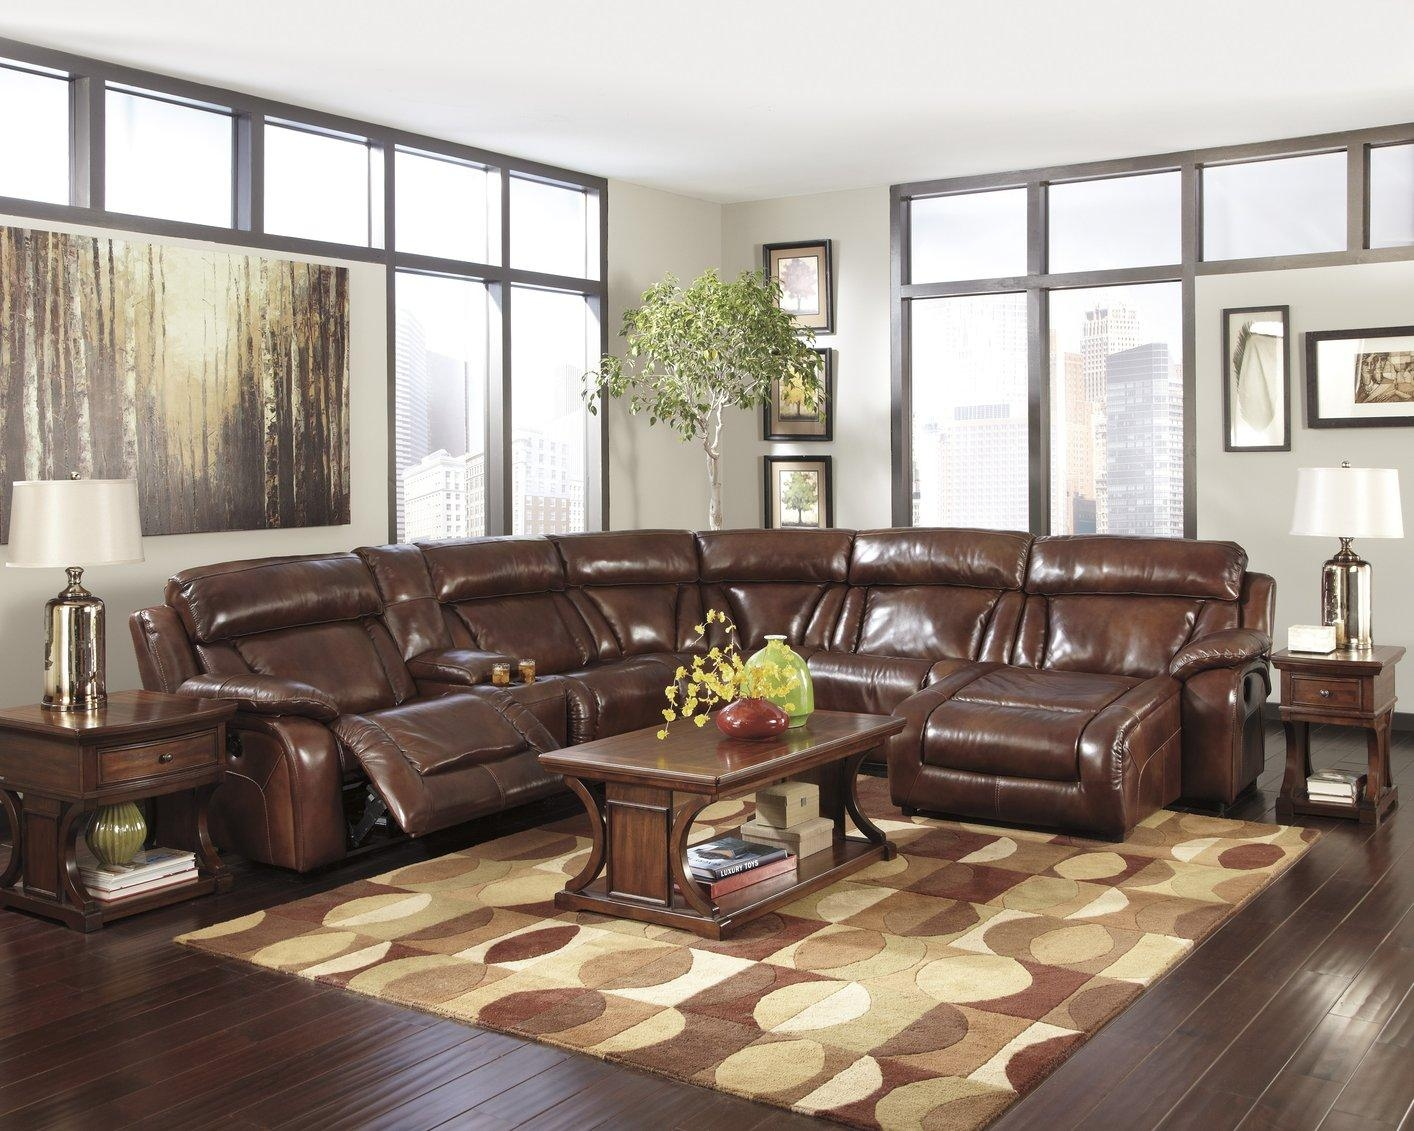 Sectional Sofa Clearance: The Best Way To Get High Quality Sofa In For High Quality Leather Sectional (Image 16 of 20)